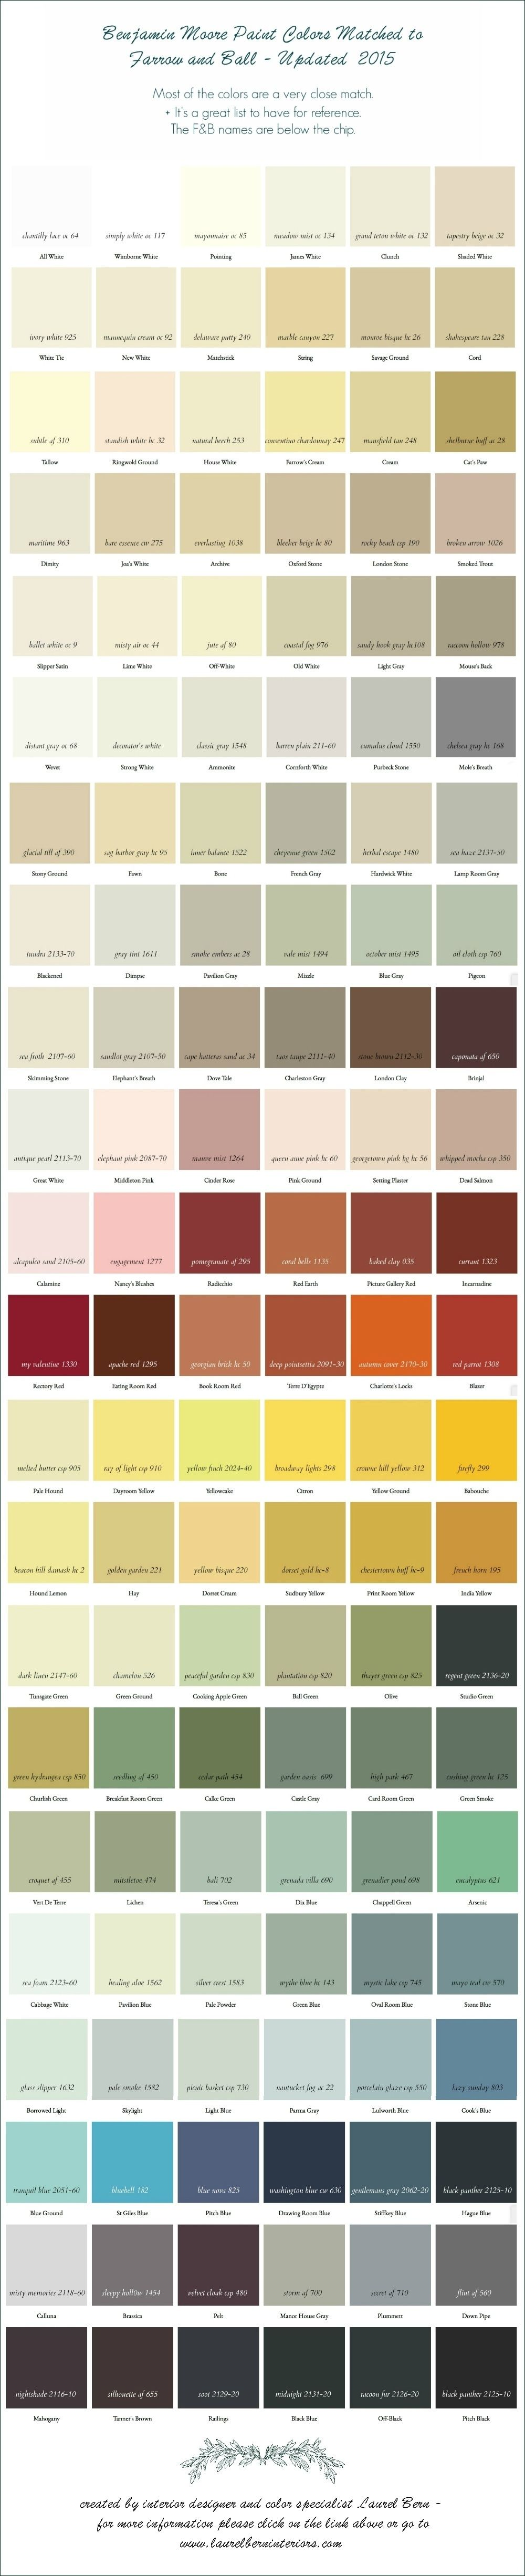 Farrow And Ball Nuancier Farrow And Ball Colors Update 2018 Matching Walls Couleur